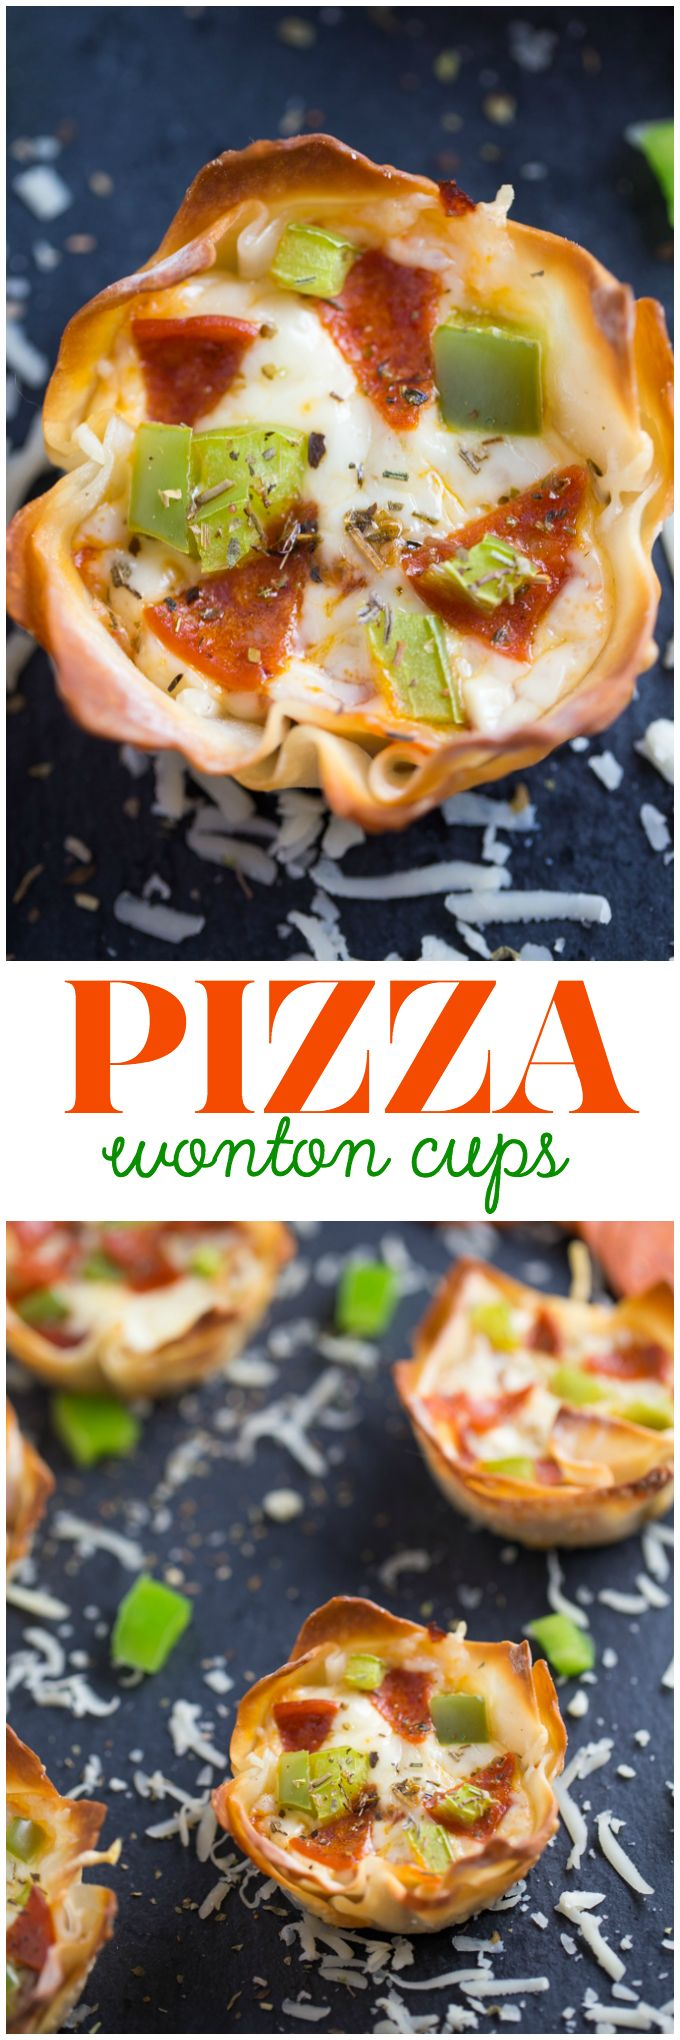 Pizza Wonton Cups - An easy appetizer baked in a crispy wonton shell and full of cheesy pizza goodness. Try them once and they may become an instant family favourite!